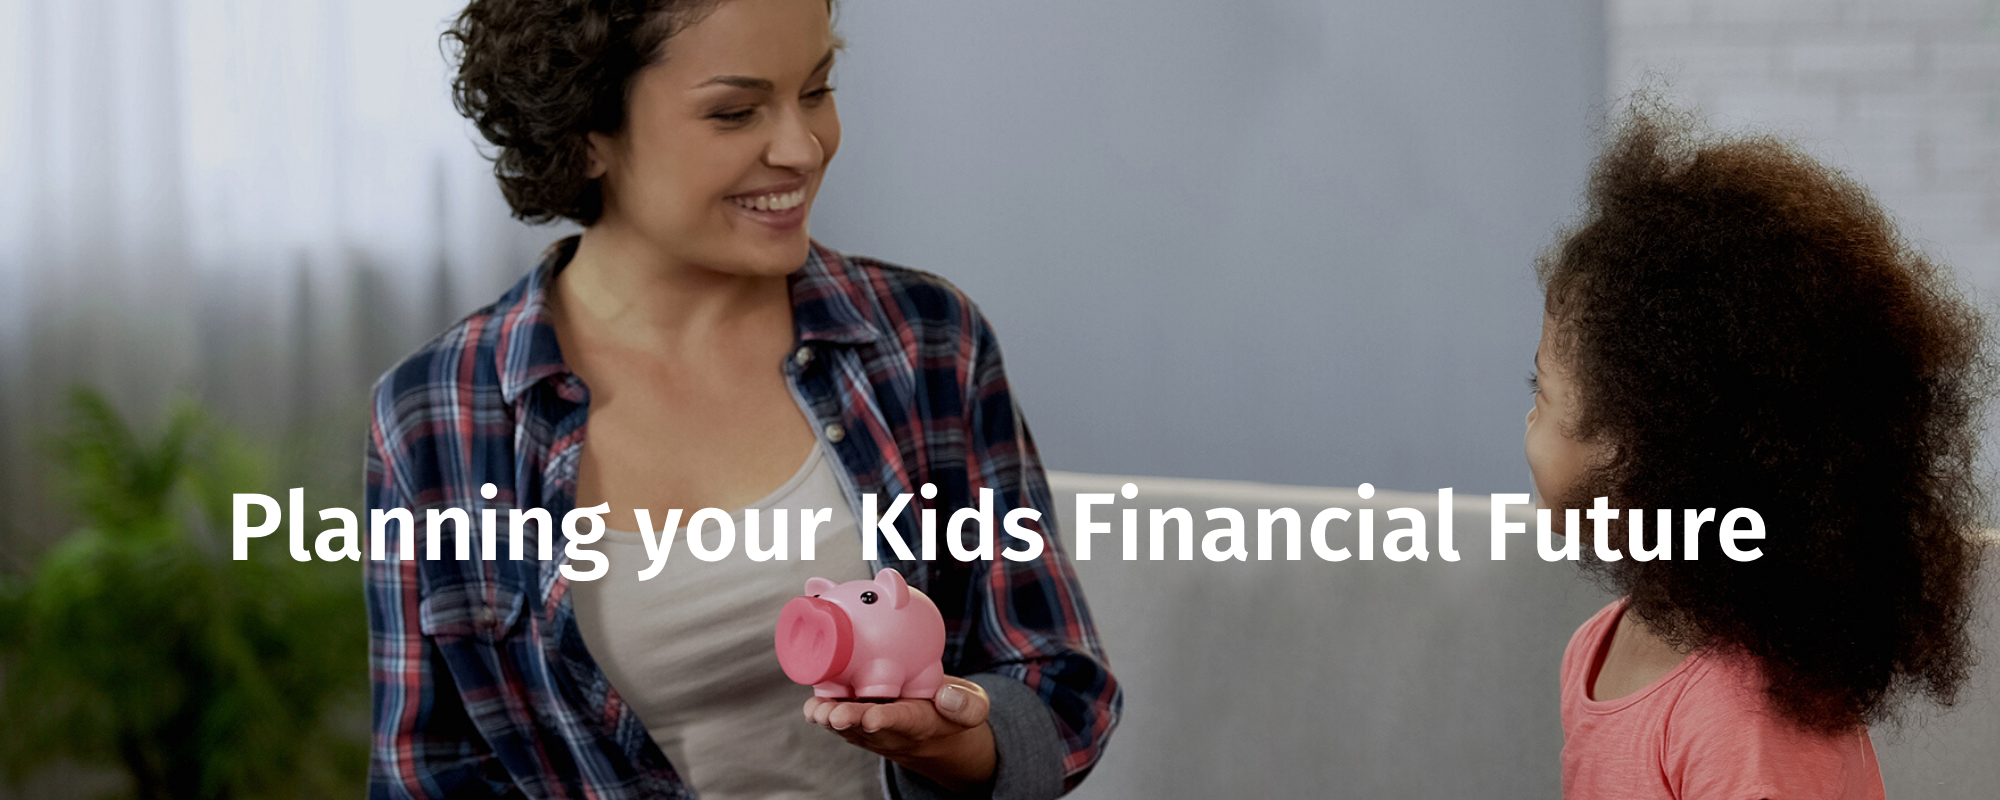 Planning your Kids' Financial Future